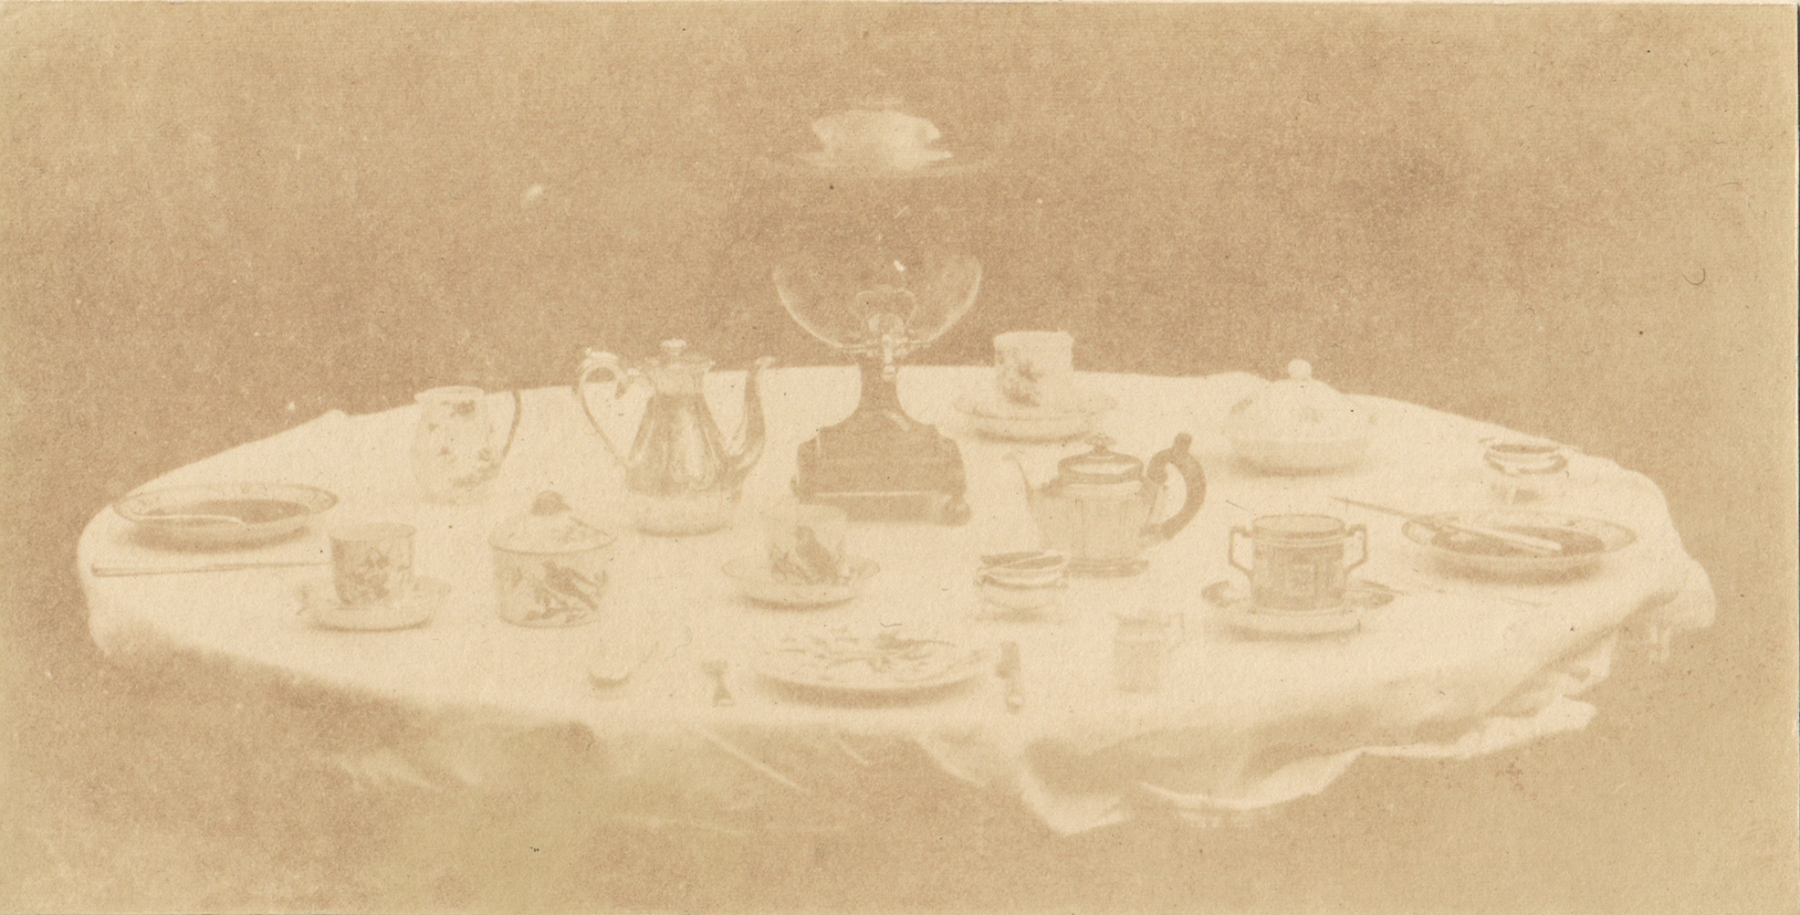 """William Henry Fox TALBOT (English, 1800-1877) Table set for tea, 1841-1842 Varnished salt print from a calotype negative 8.5 x 16.8 cm mounted on card, ruled  """"Patent Talbotype Photogenic Drawing"""" label on mount verso"""